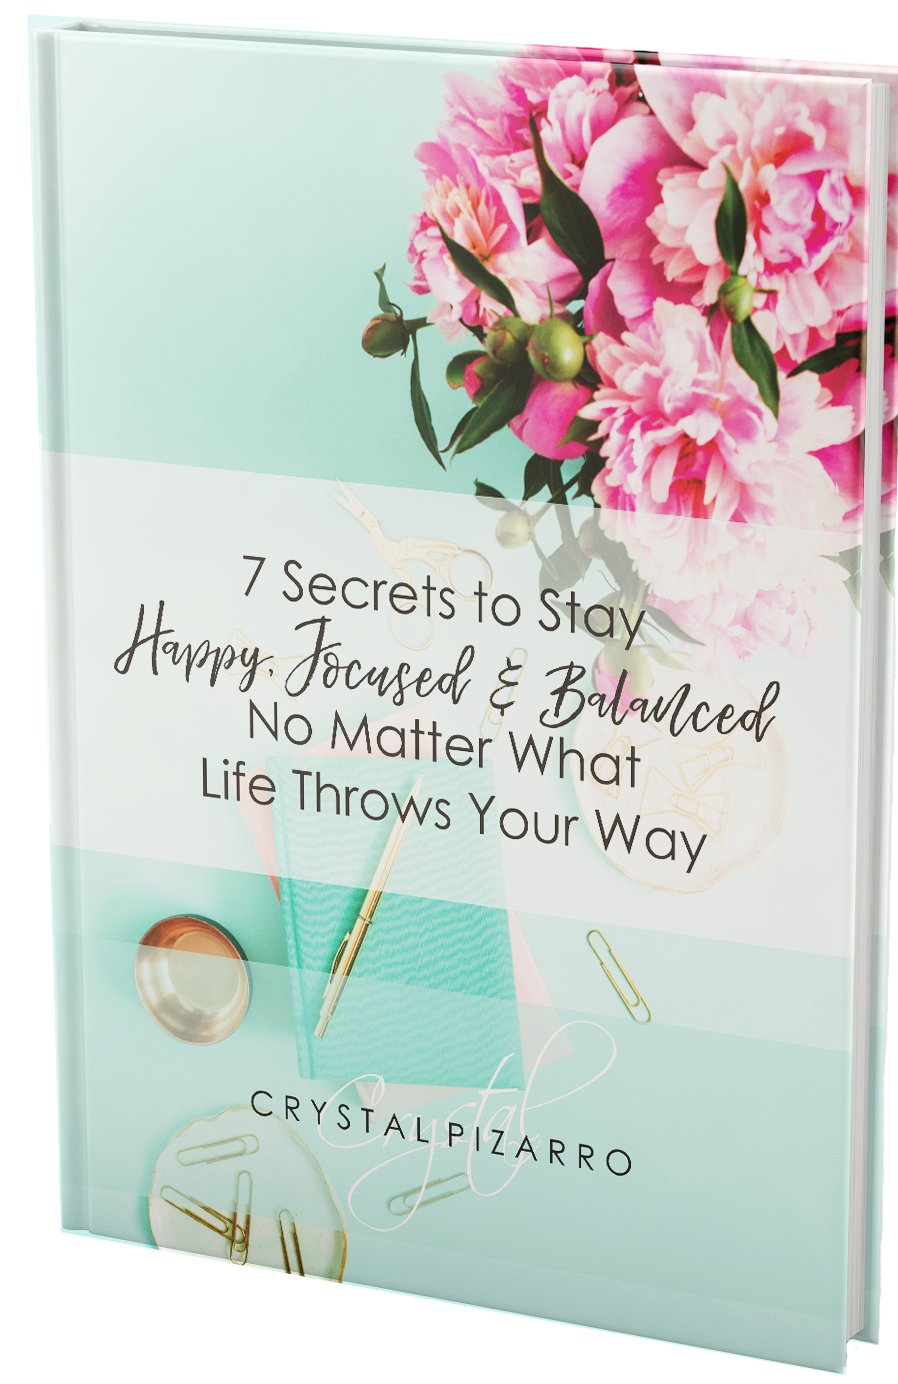 7 Secrets to Stay Happy, Focused & Balanced No Matter What Life Throws Your Way